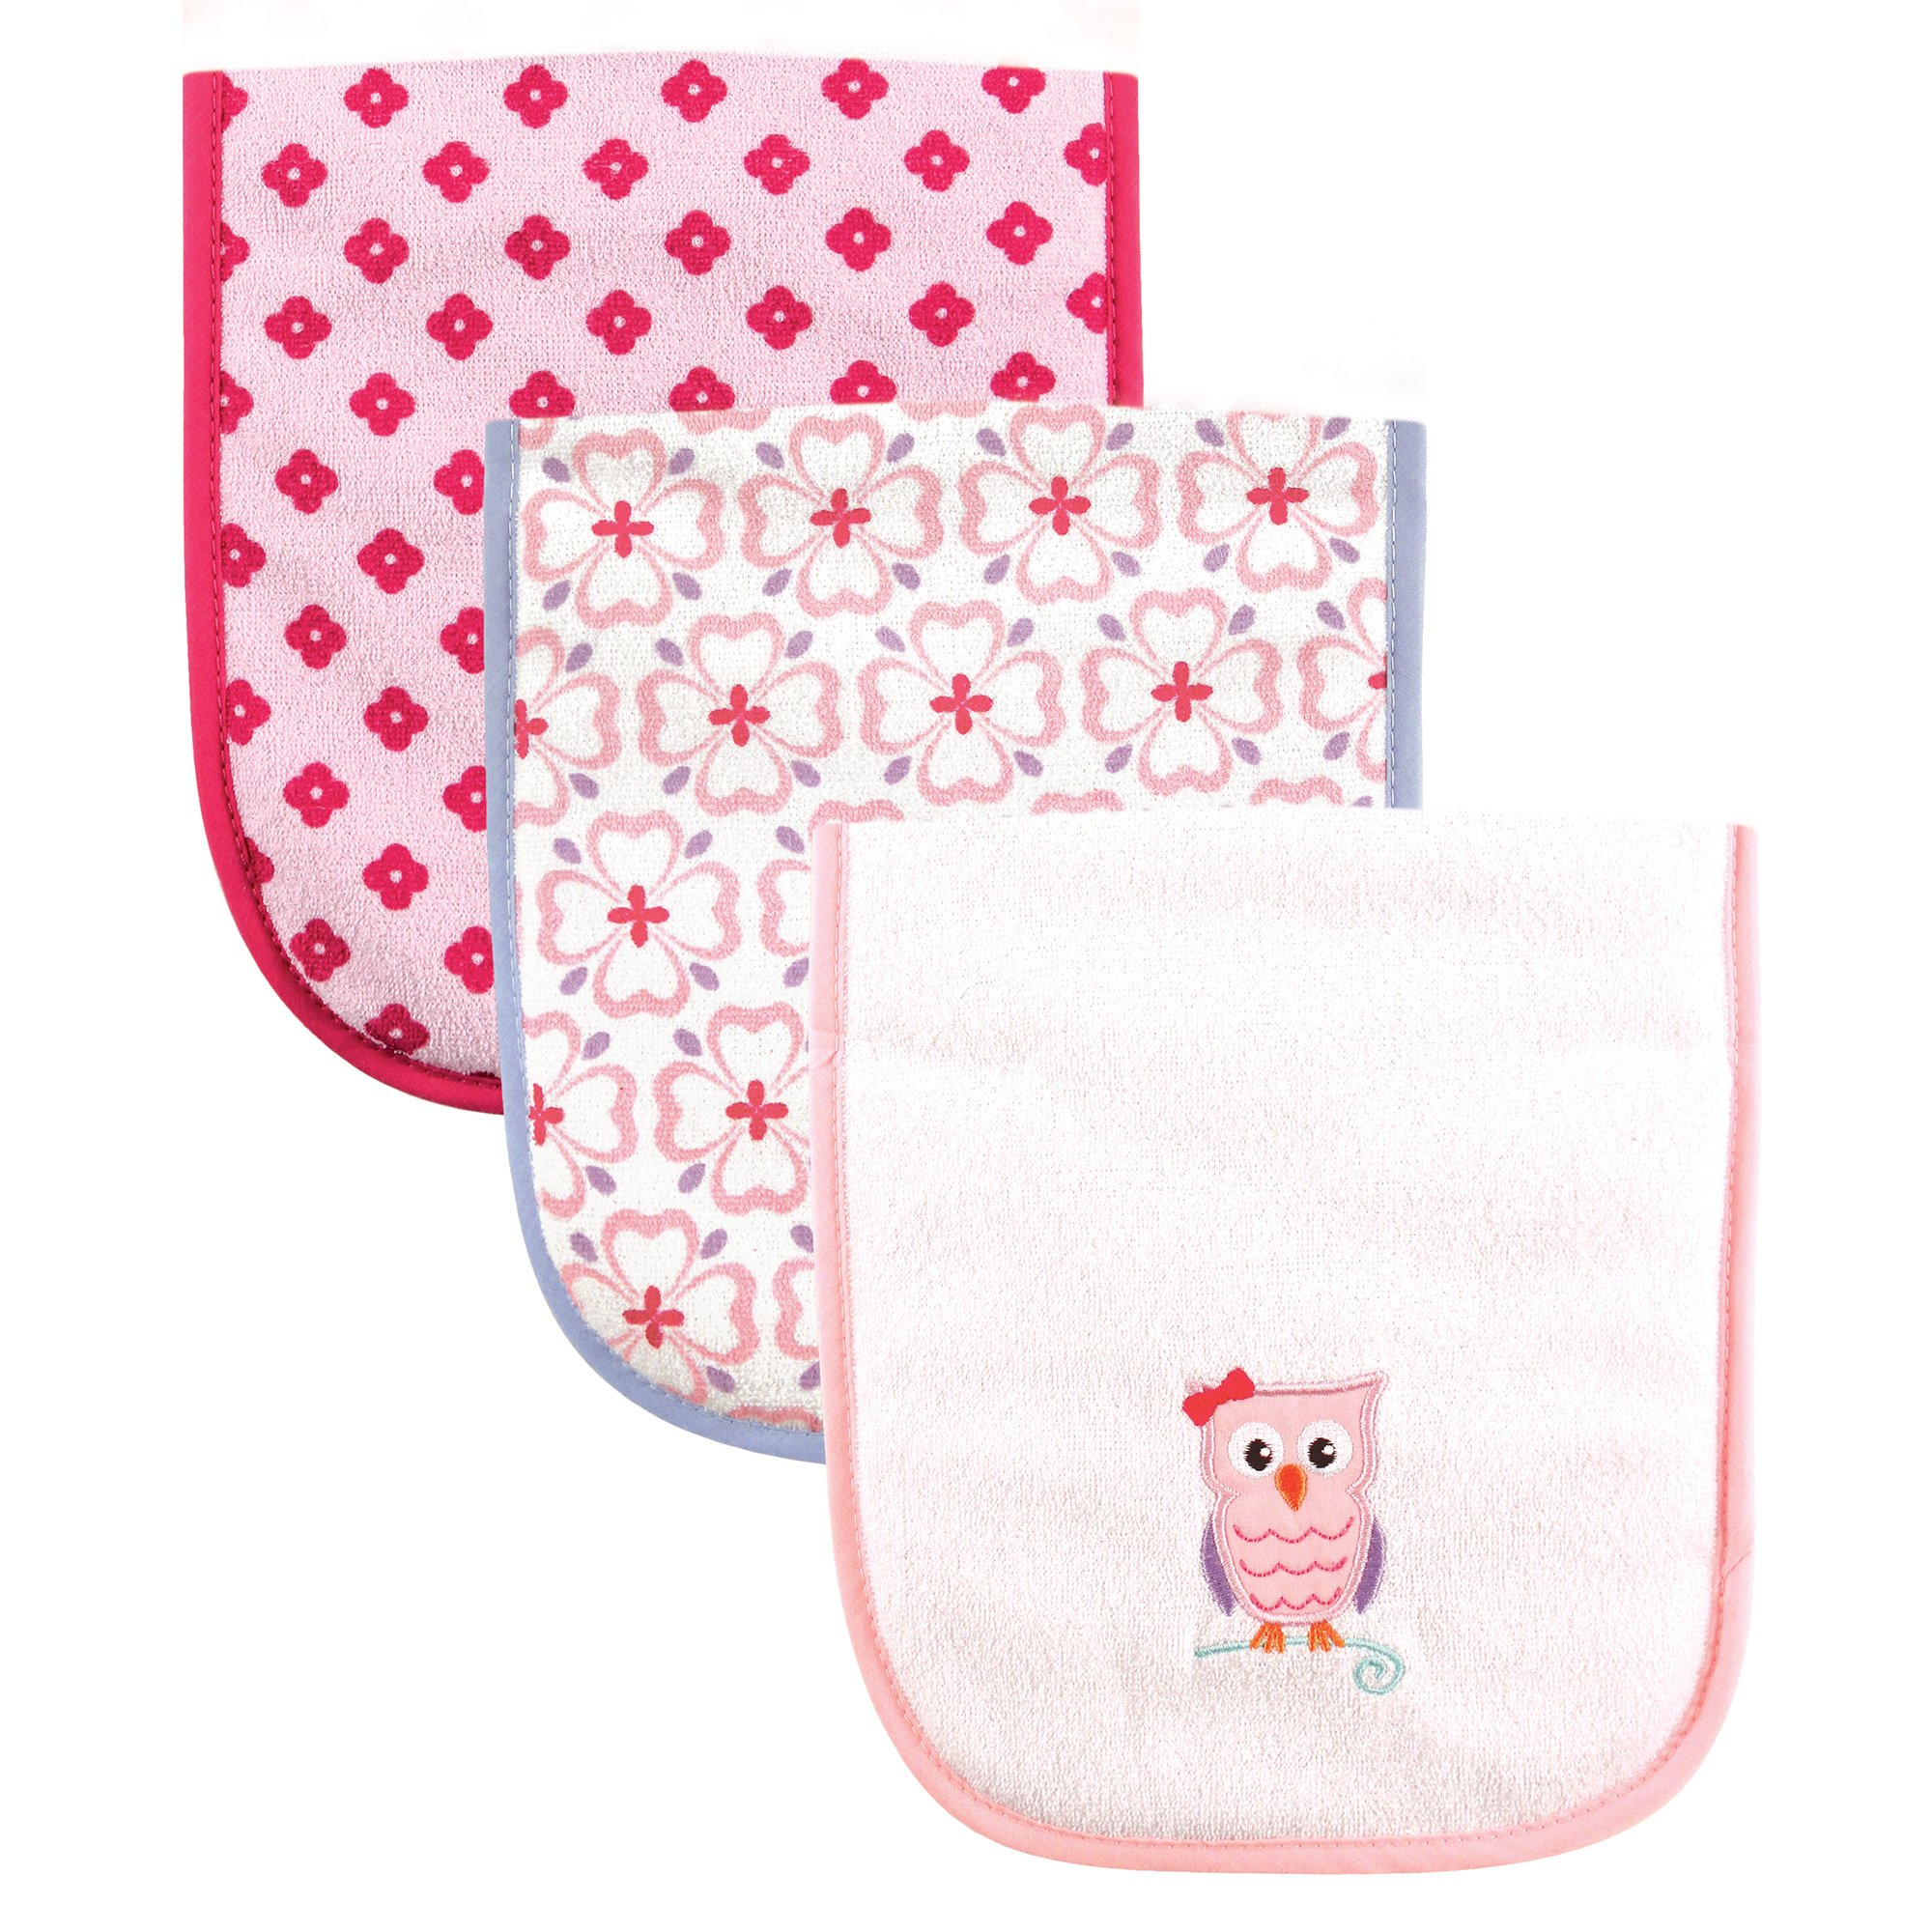 Luvable Friends Baby Burp Cloths, Pink Owl